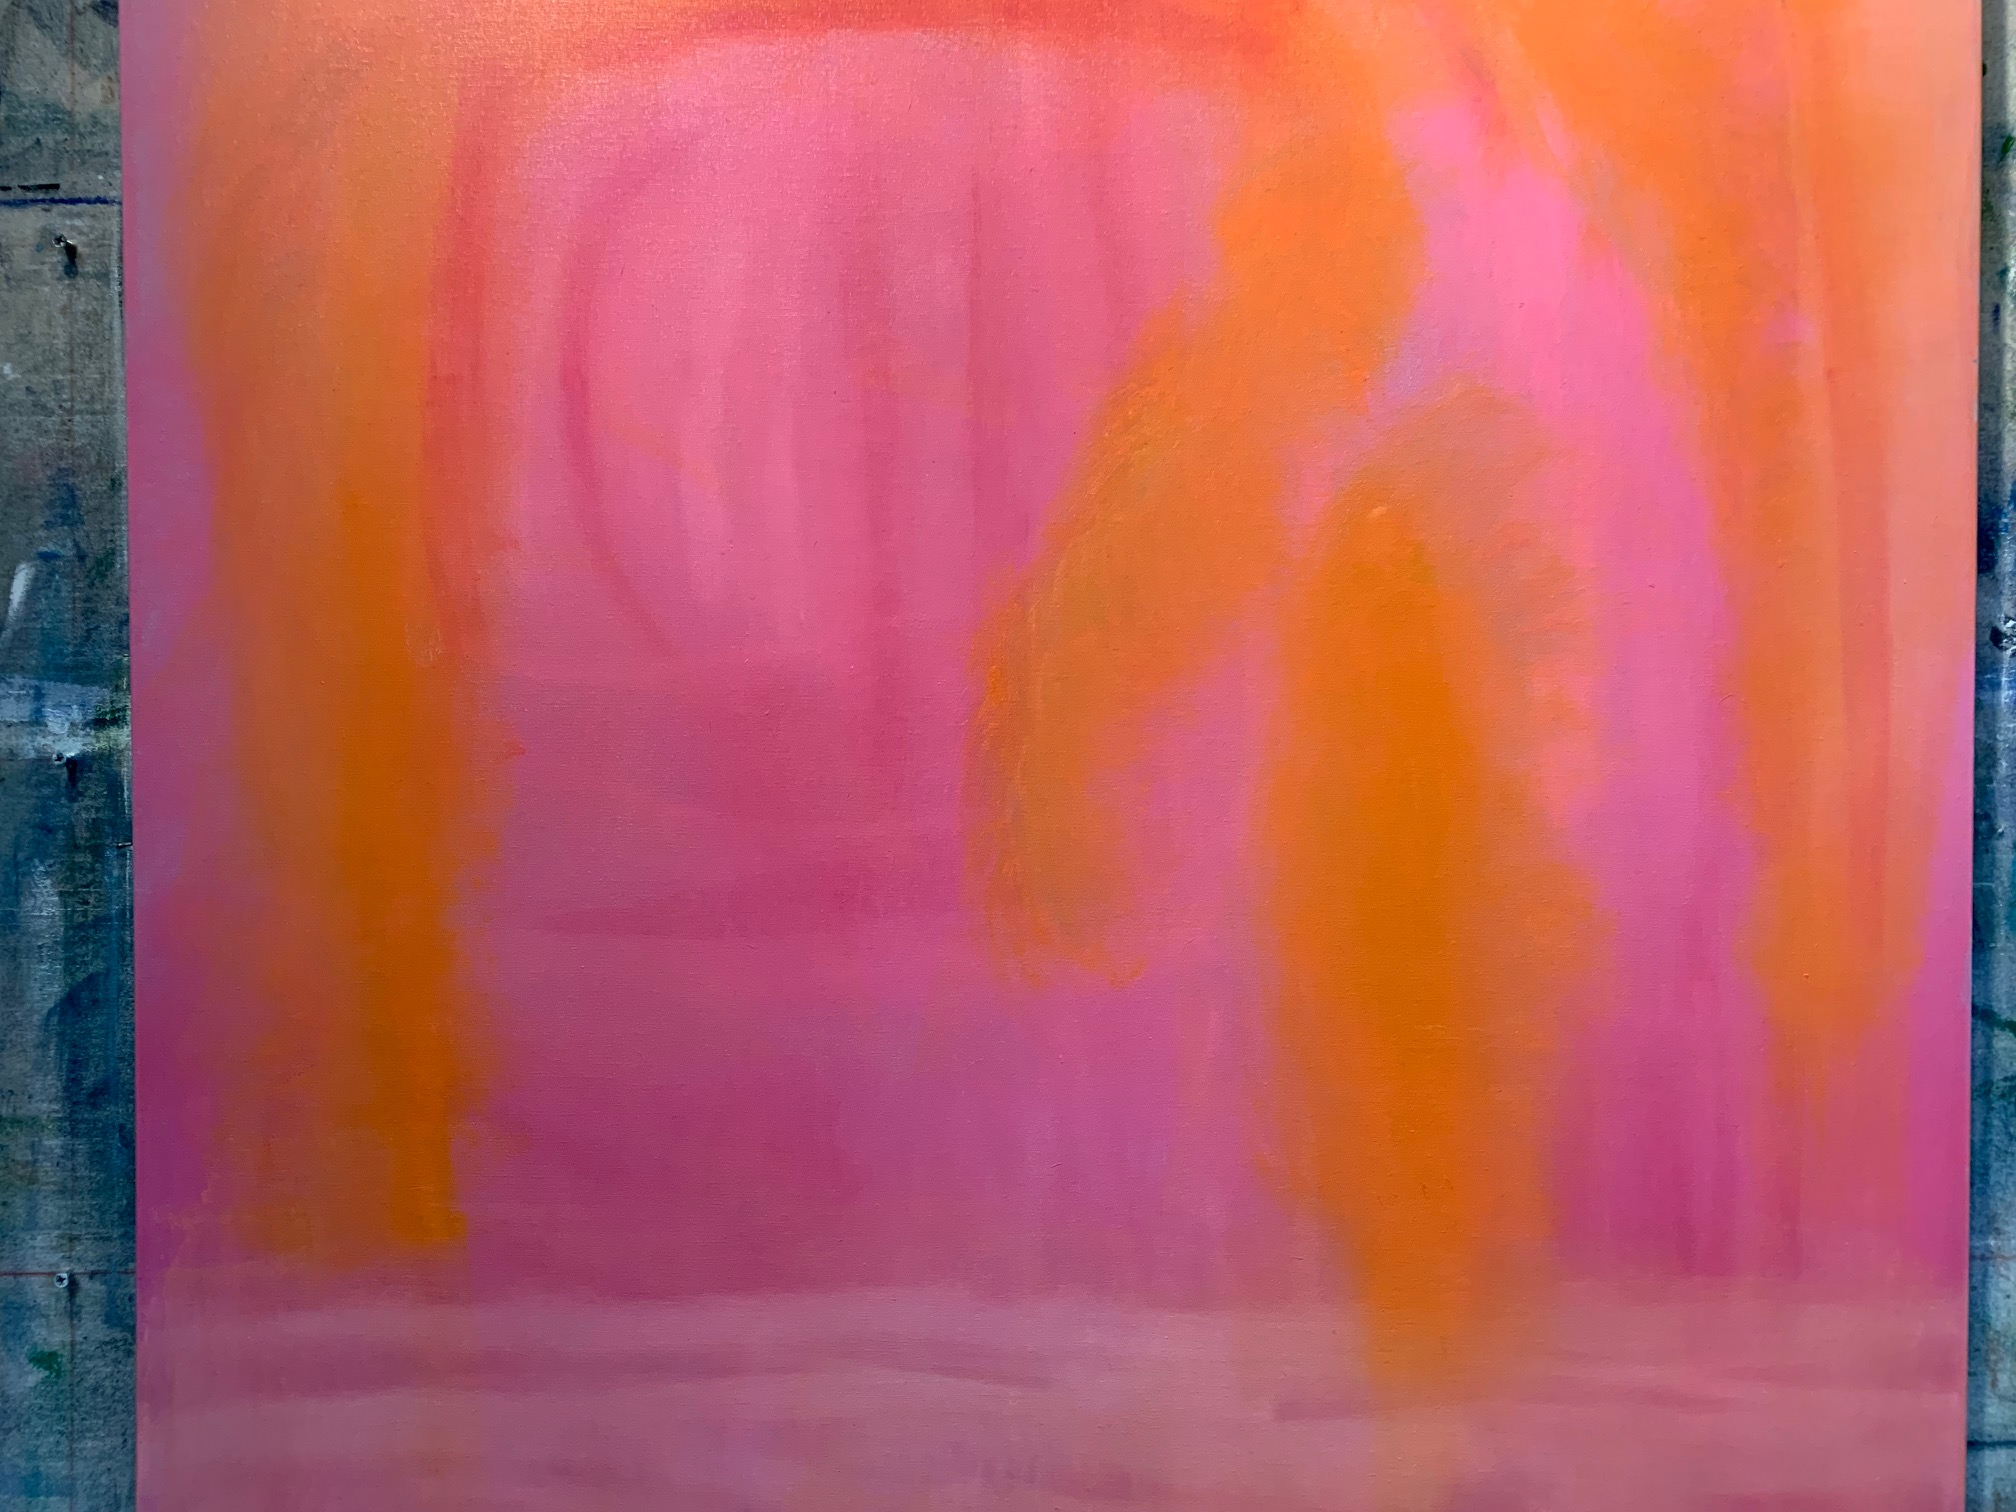 Michel D'Ermo, Sunrise II, oil on canvas, 48 x 60 in $9000